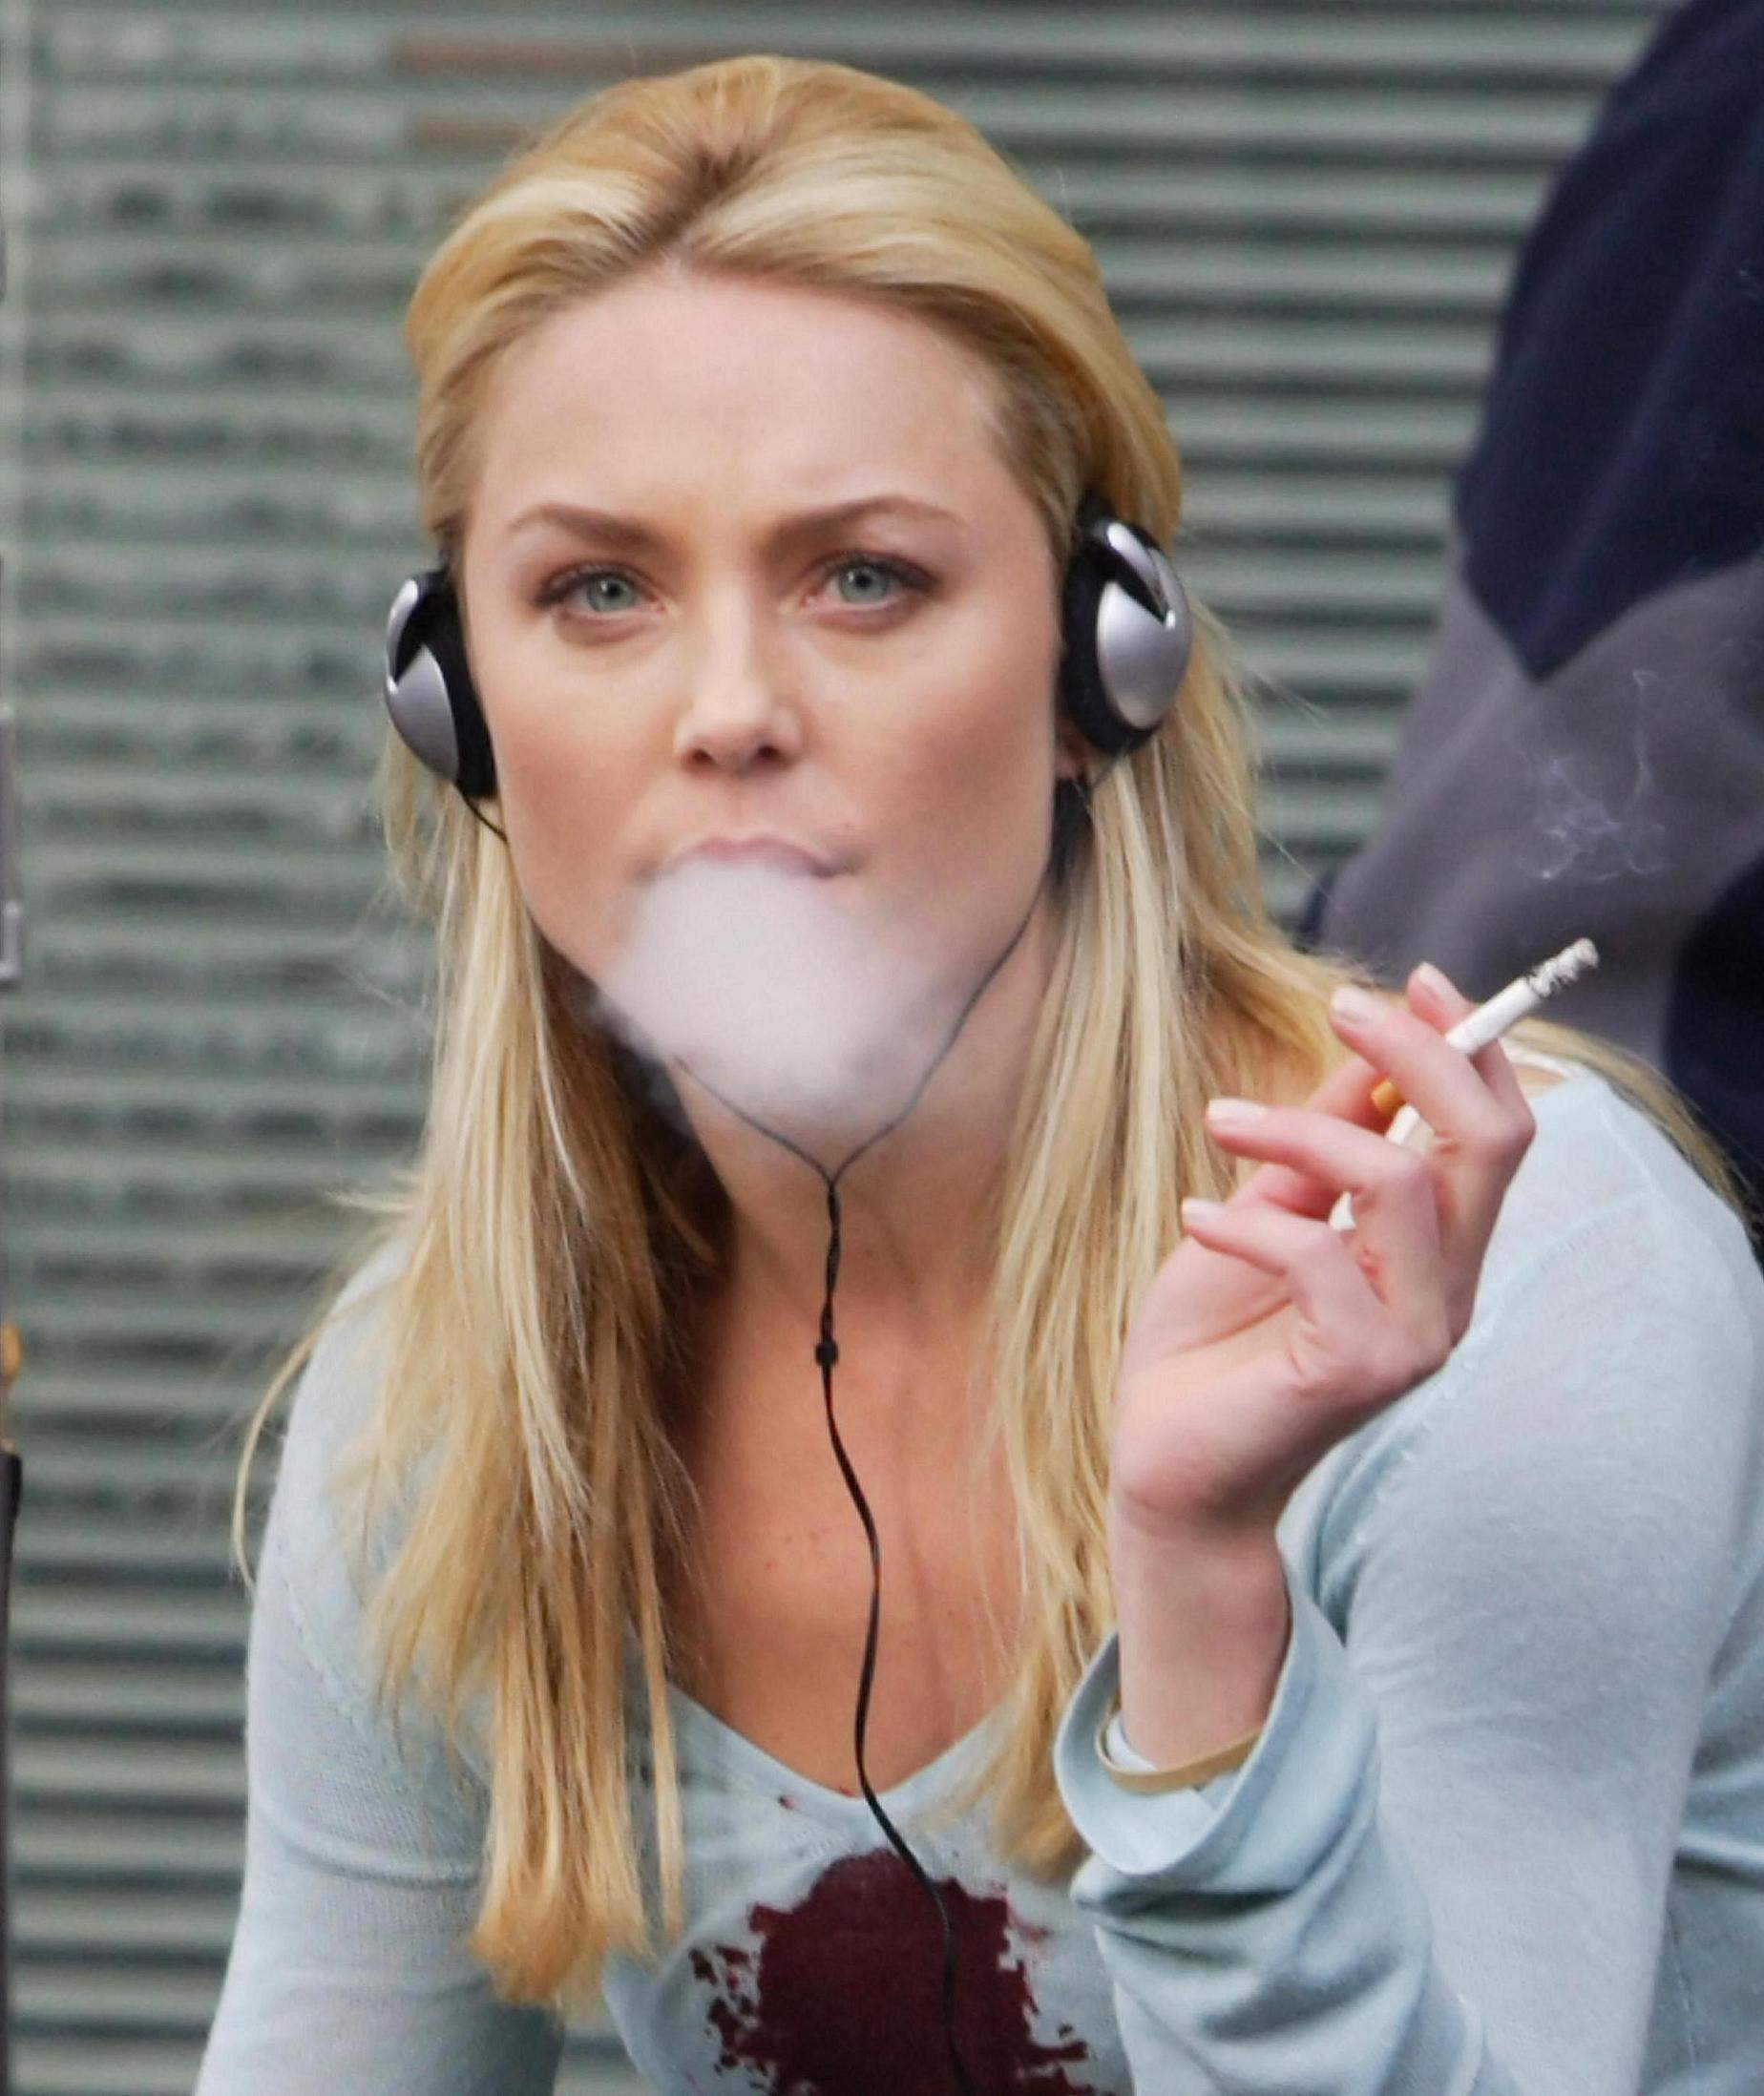 dating someone smokes cigarettes One of the first signs that someone is smoking is the odor the smell of cigarette smoke clings to fabrics and hair you may also notice bad breath if someone is smoking cigarettes.